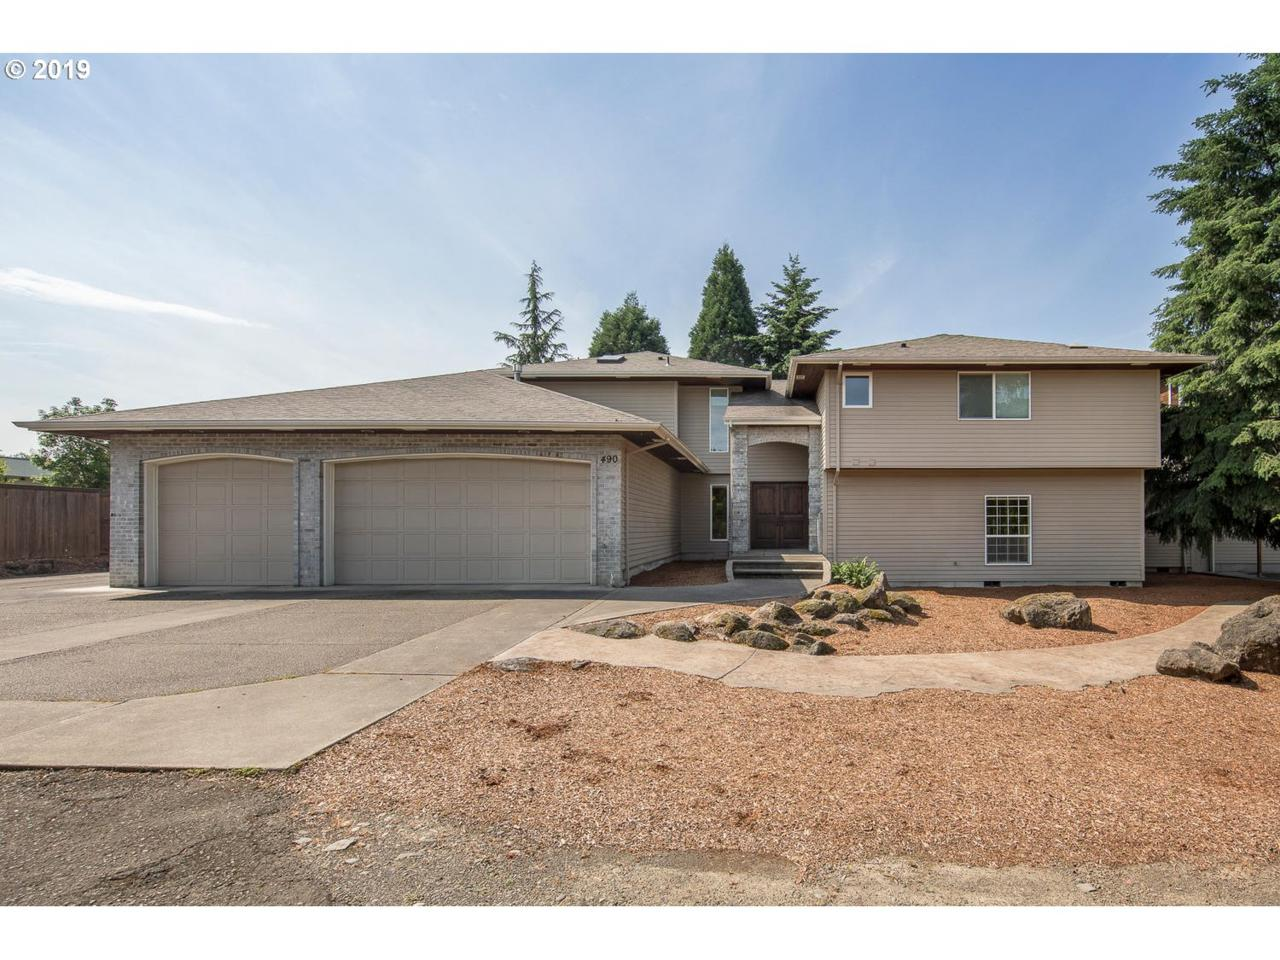 490 173RD Ave - Photo 1